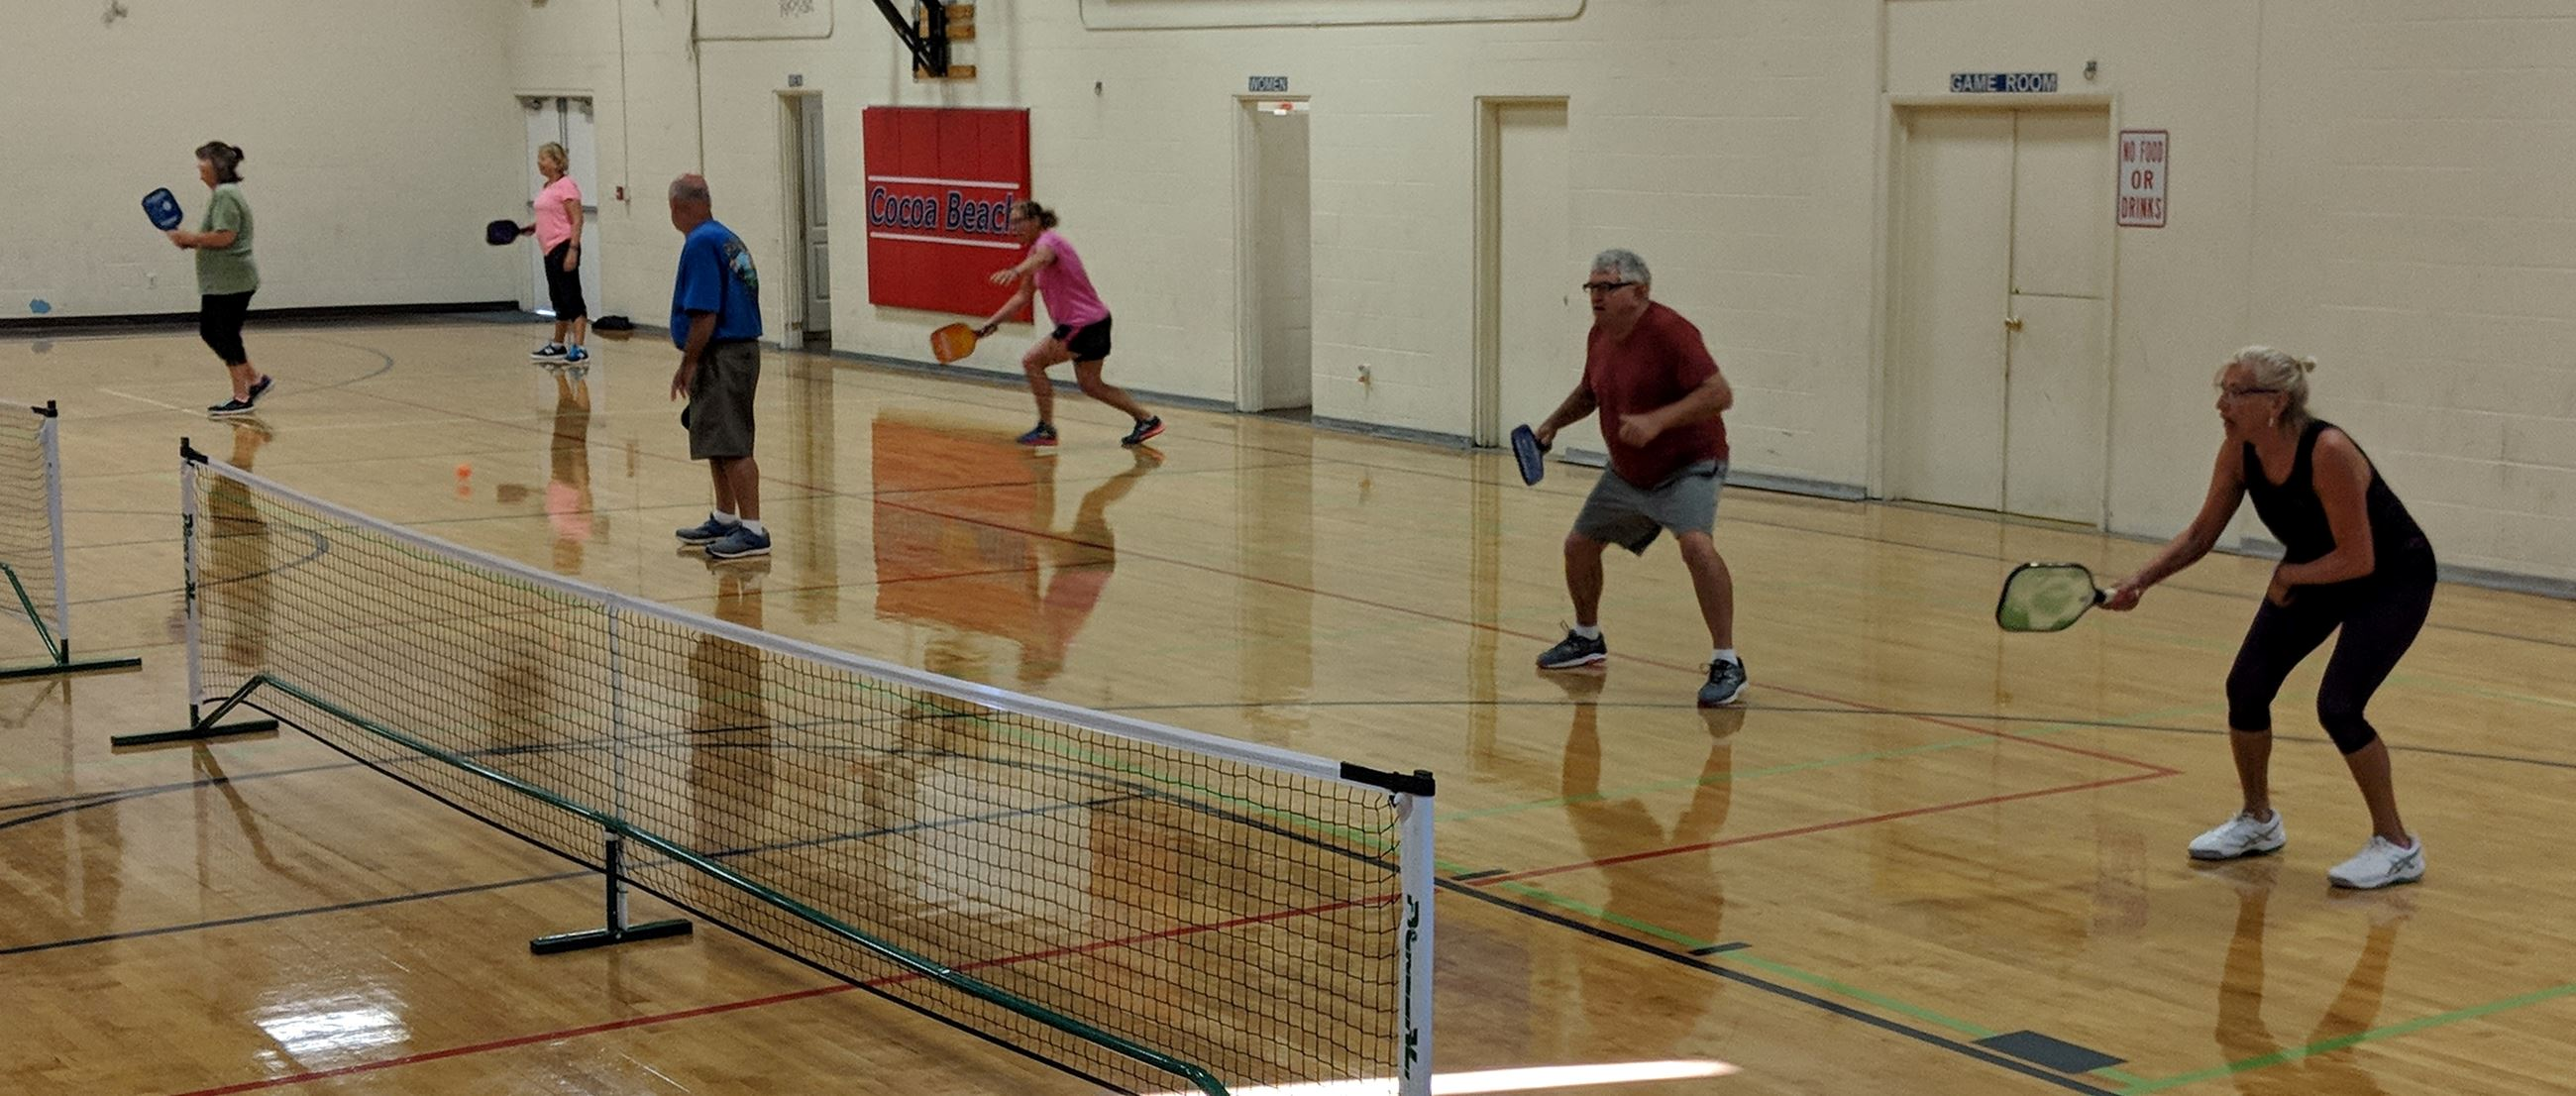 team playing pickleball at the recreation center